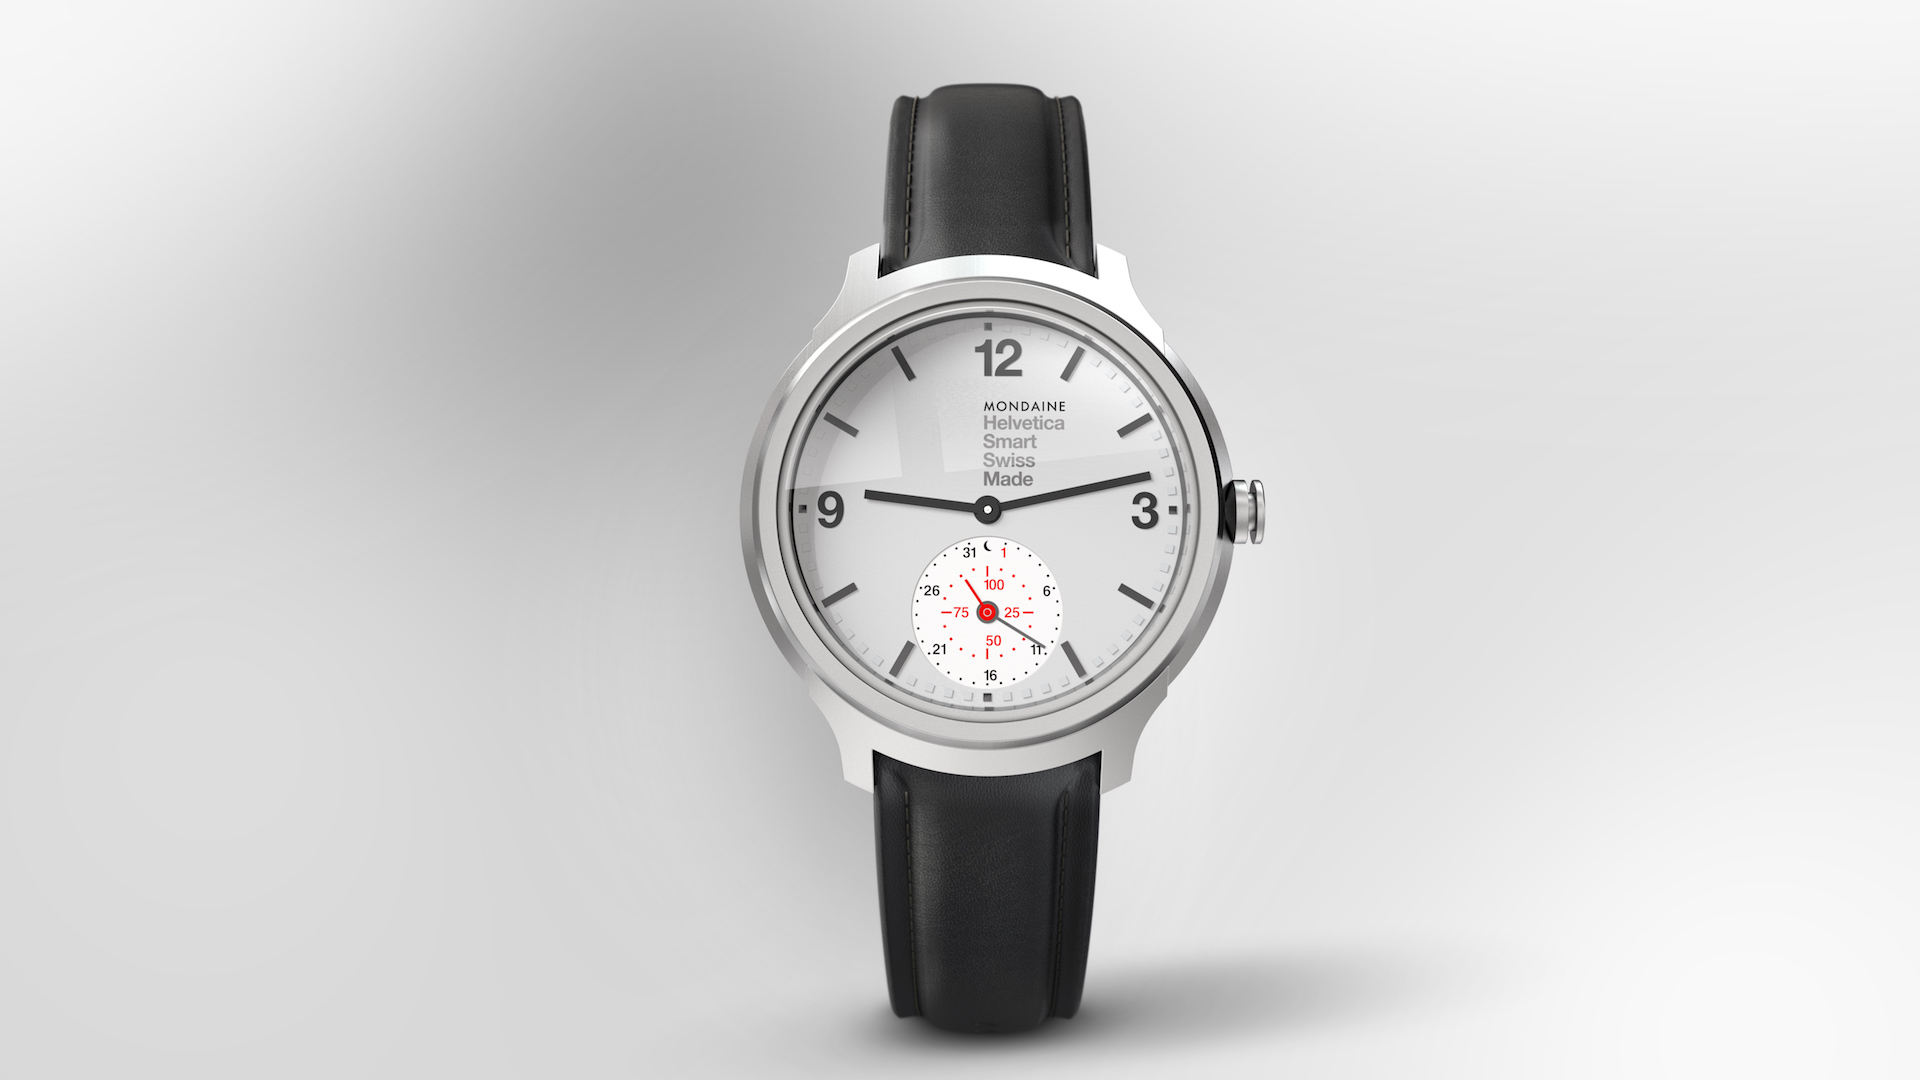 Swiss watchmaker Mondaine jumps onto Apple Watch's turf